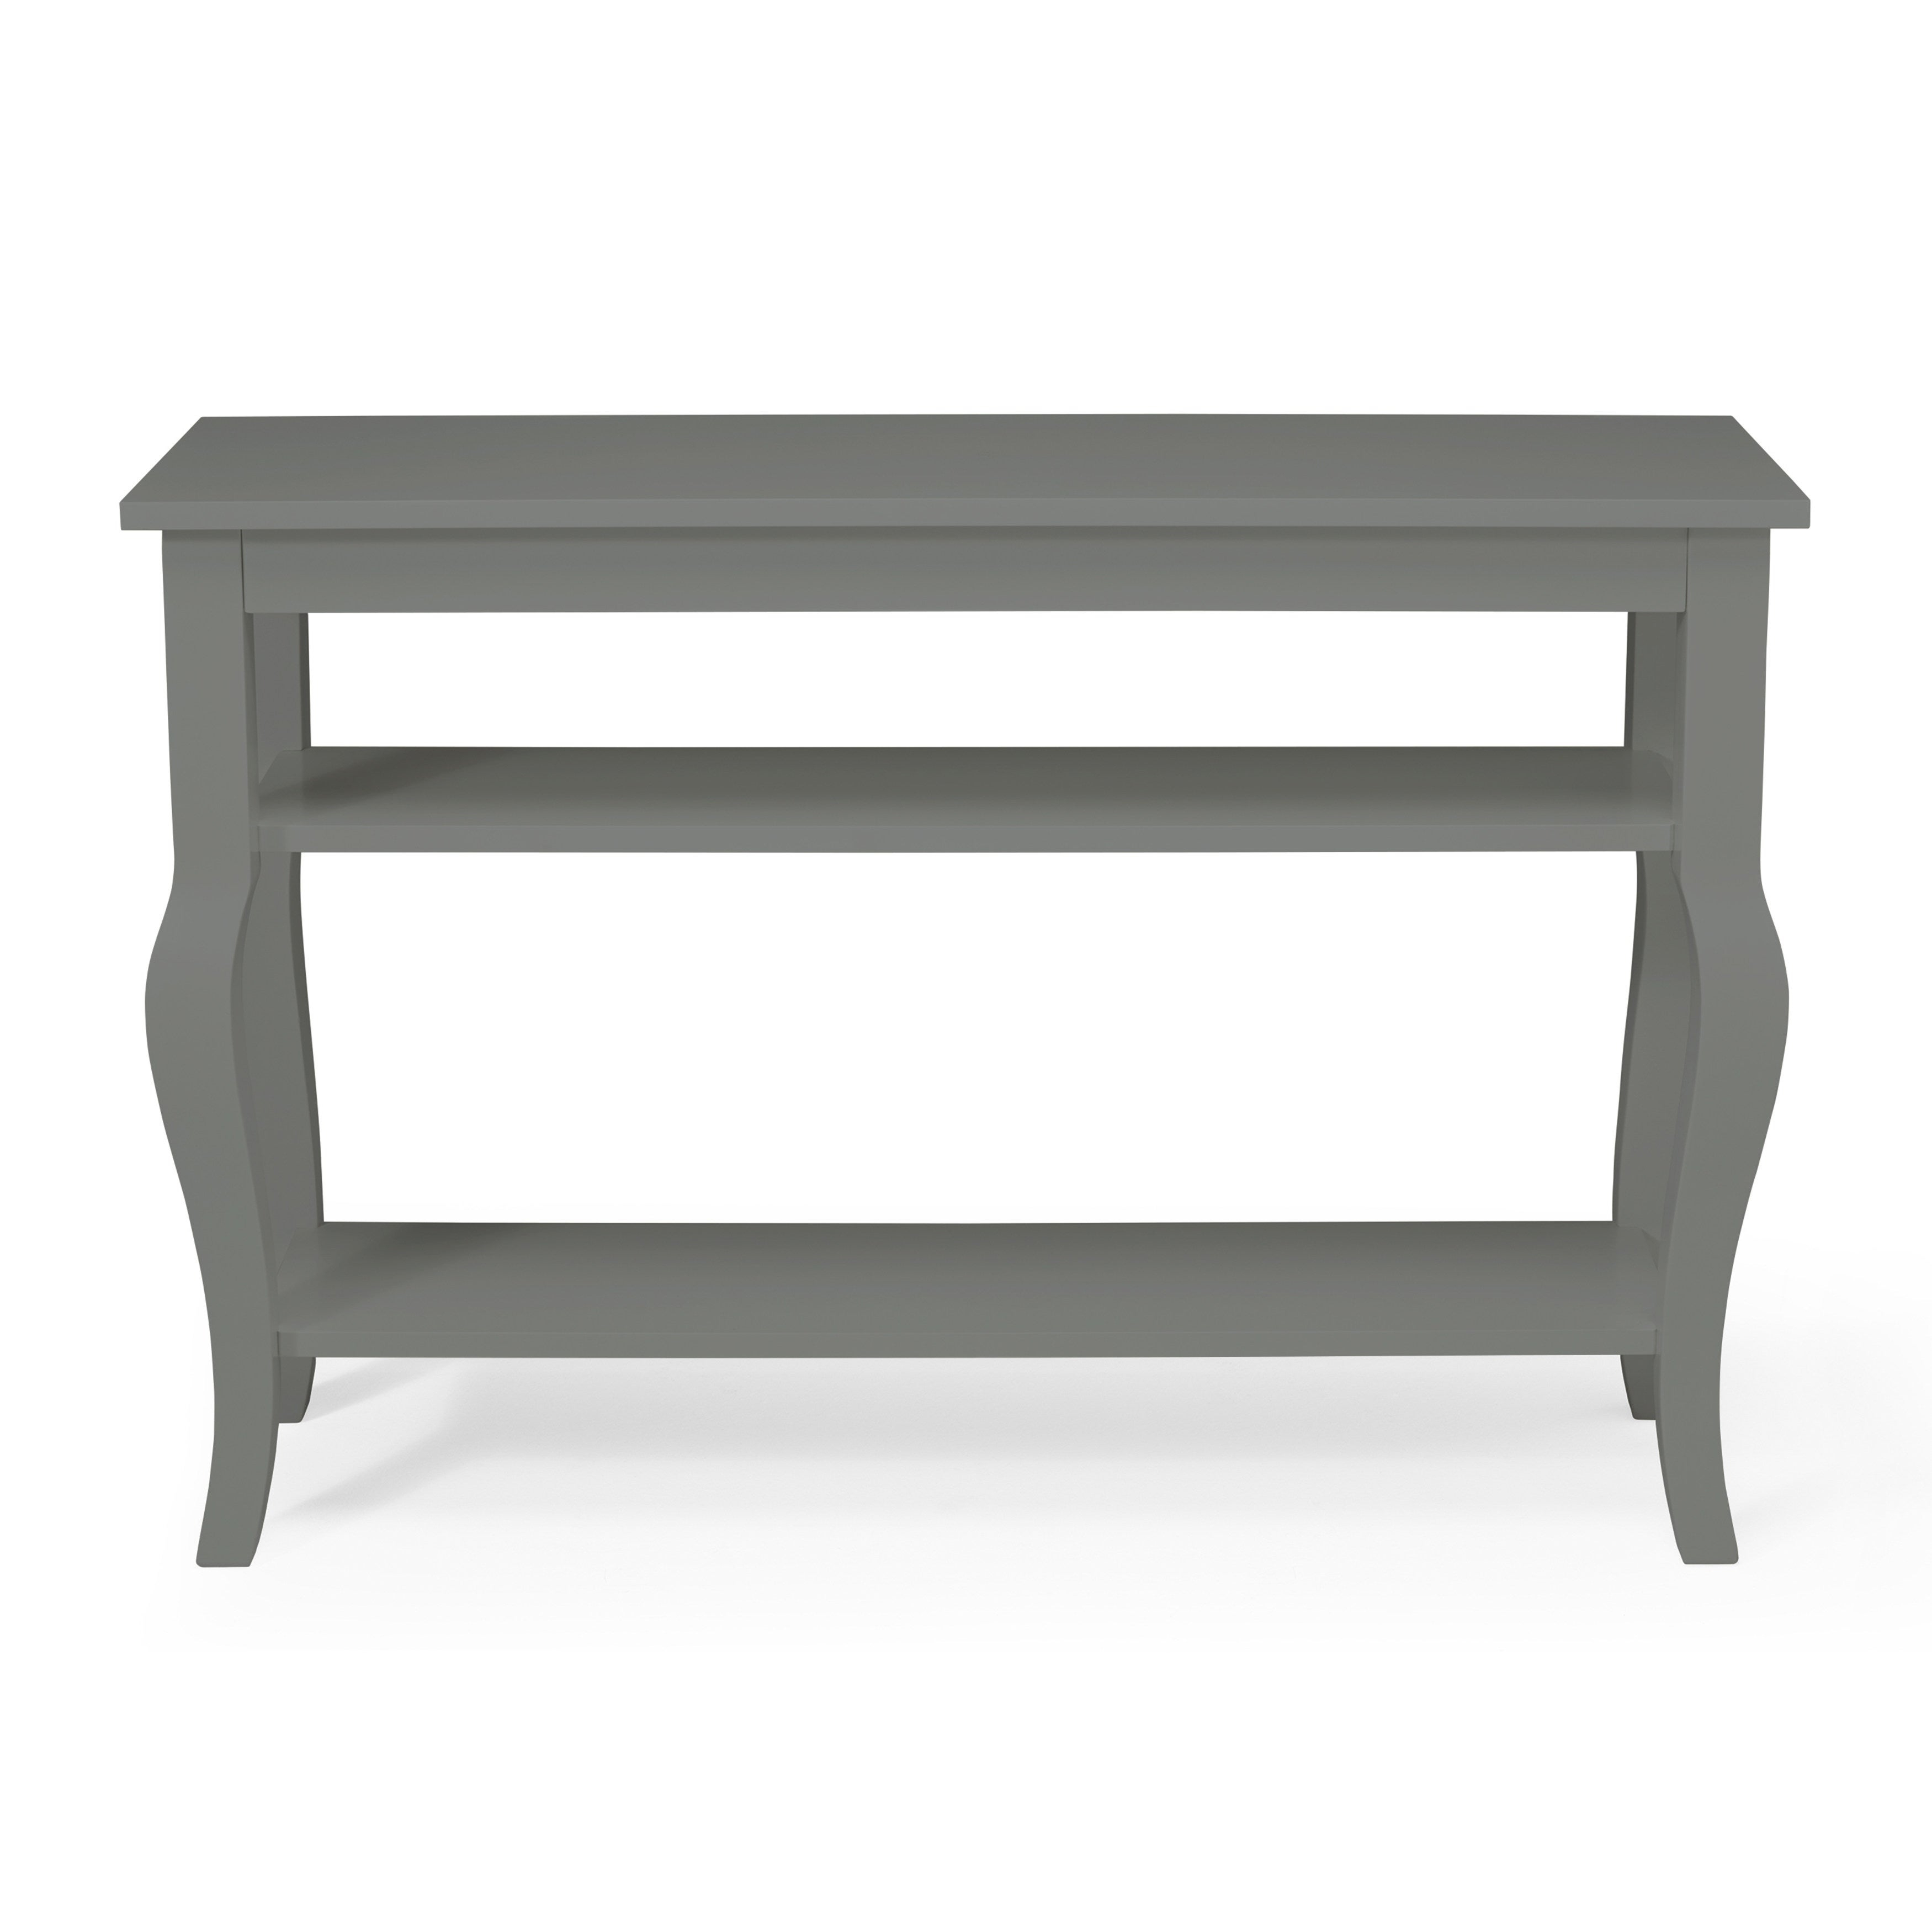 Kate And Laurel Lillian Wood 2 Shelf Console Table With Curved Legs Throughout 2 Shelf Buffets With Curved Legs (Photo 1 of 30)